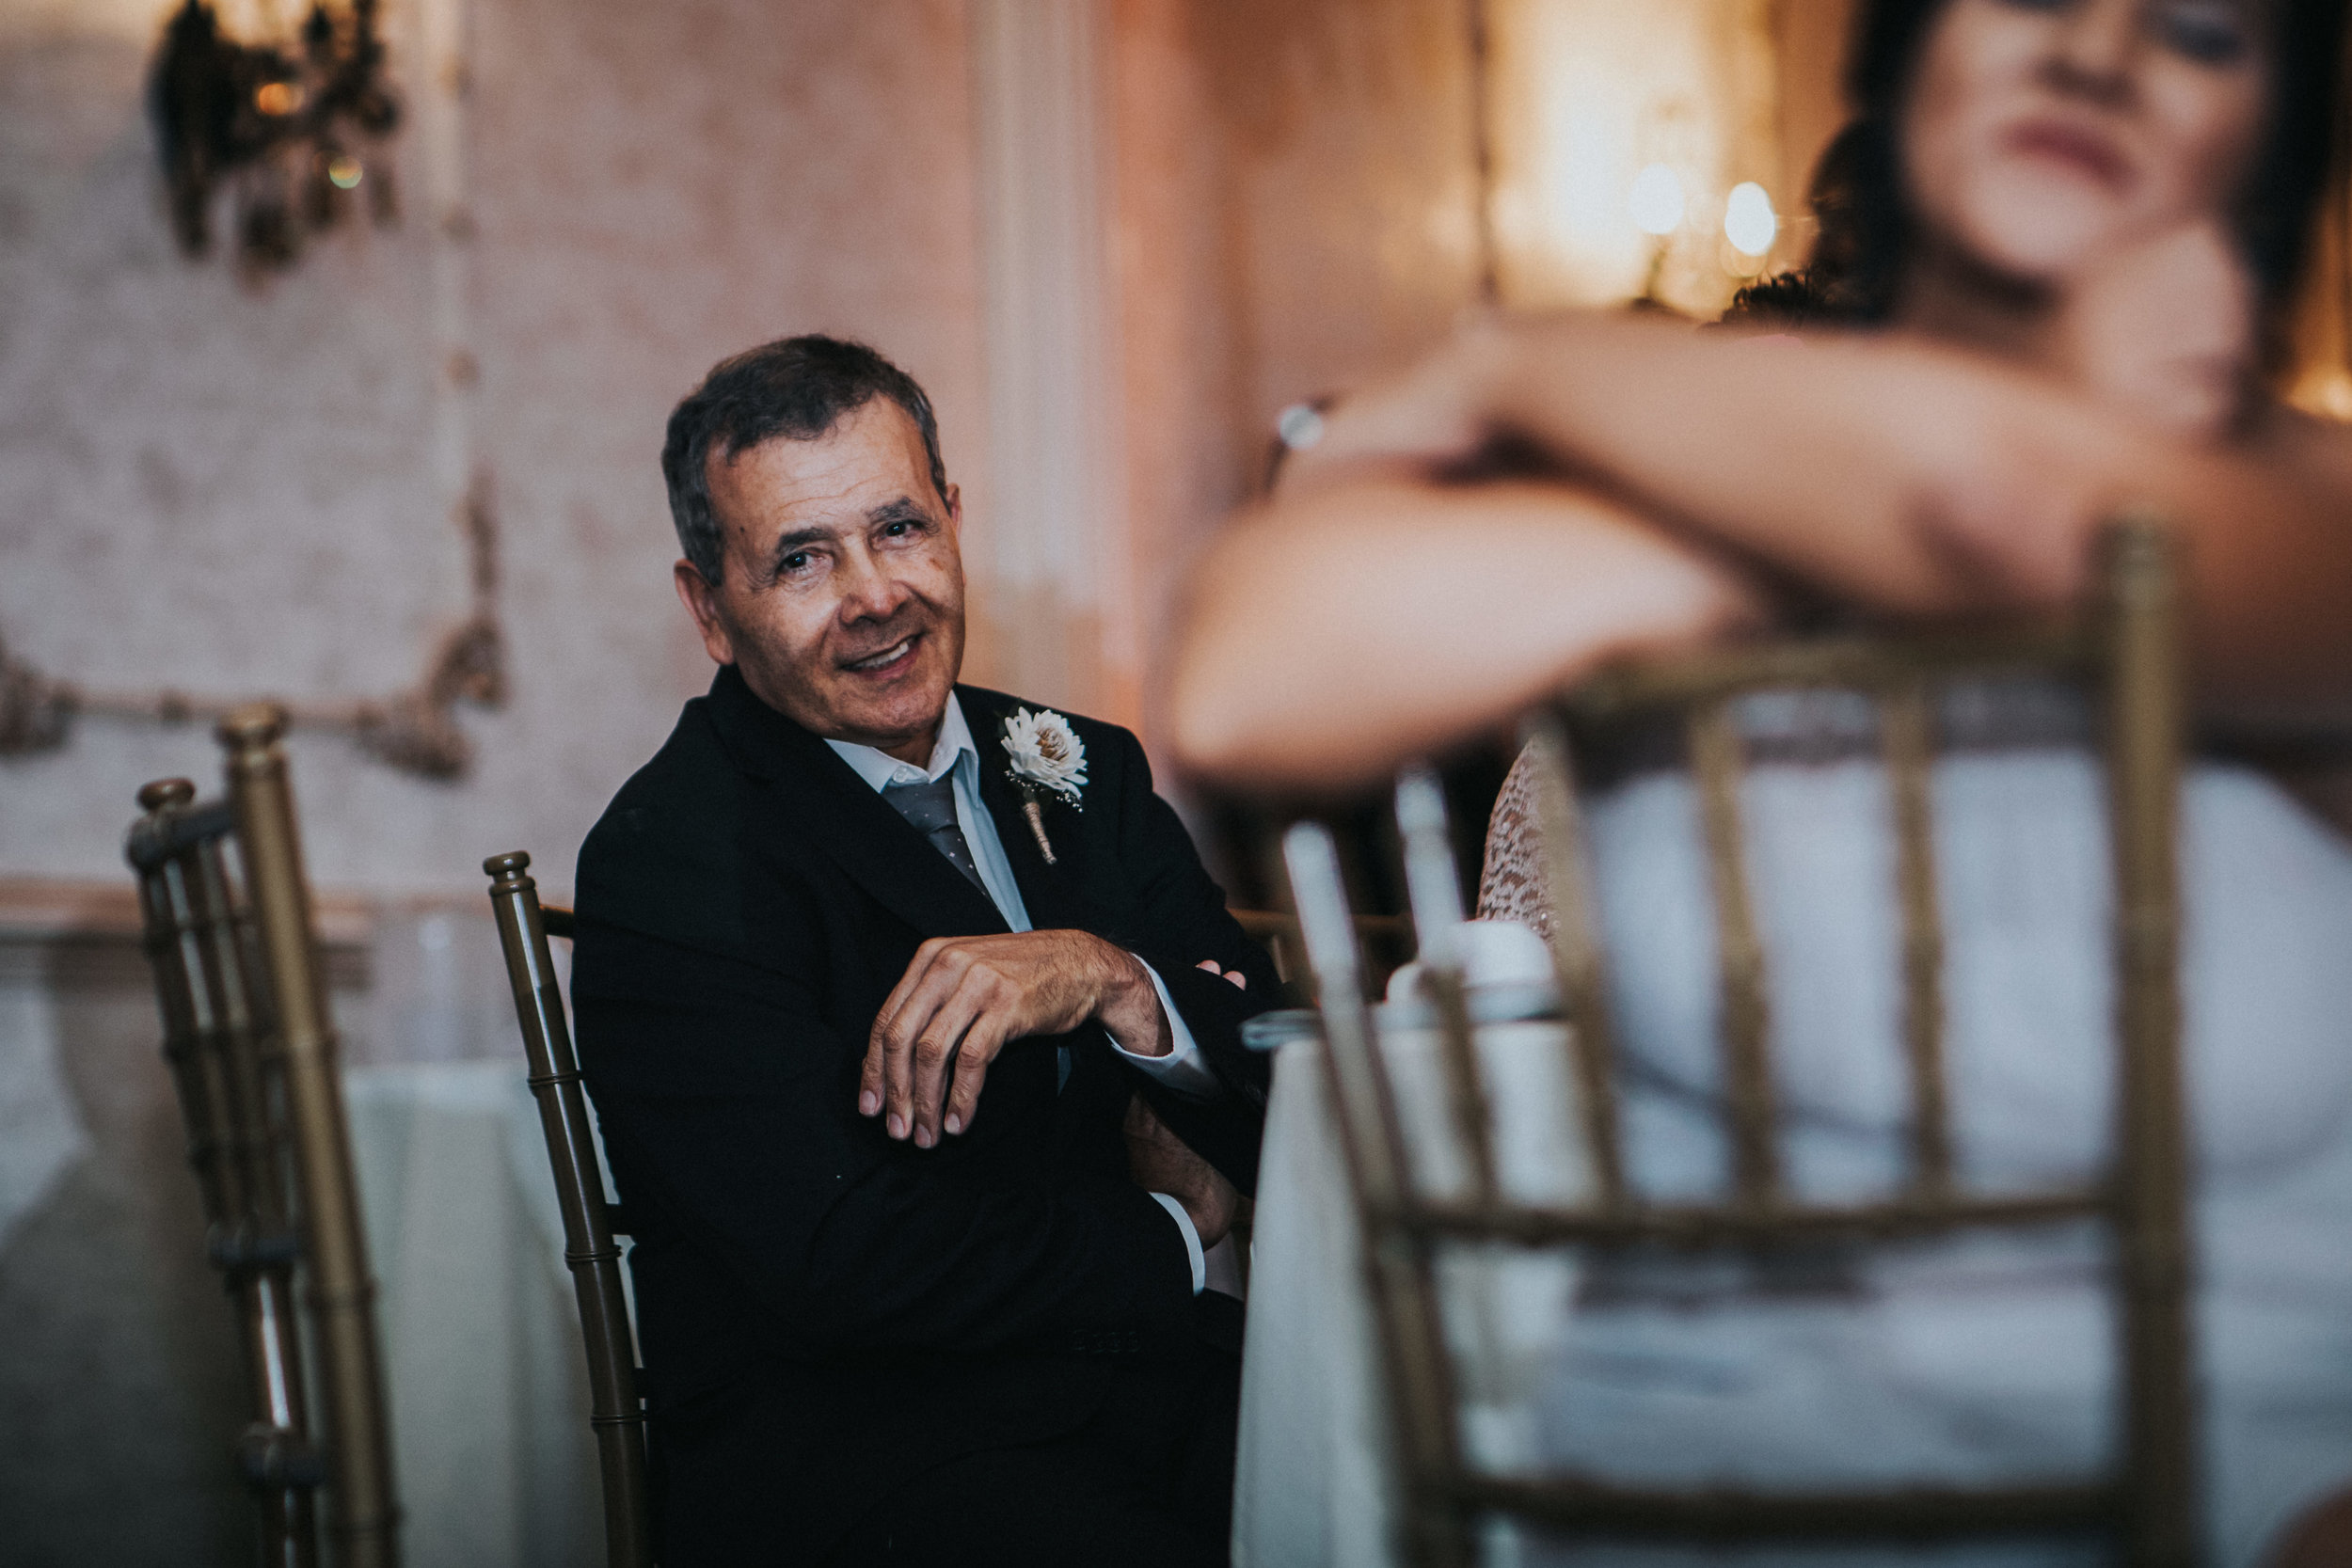 New-Jersey-Wedding-Photographer-Jenna-Lynn-Photography-Wedding-Brigalias-Ashley&Sal-Reception-66.jpg